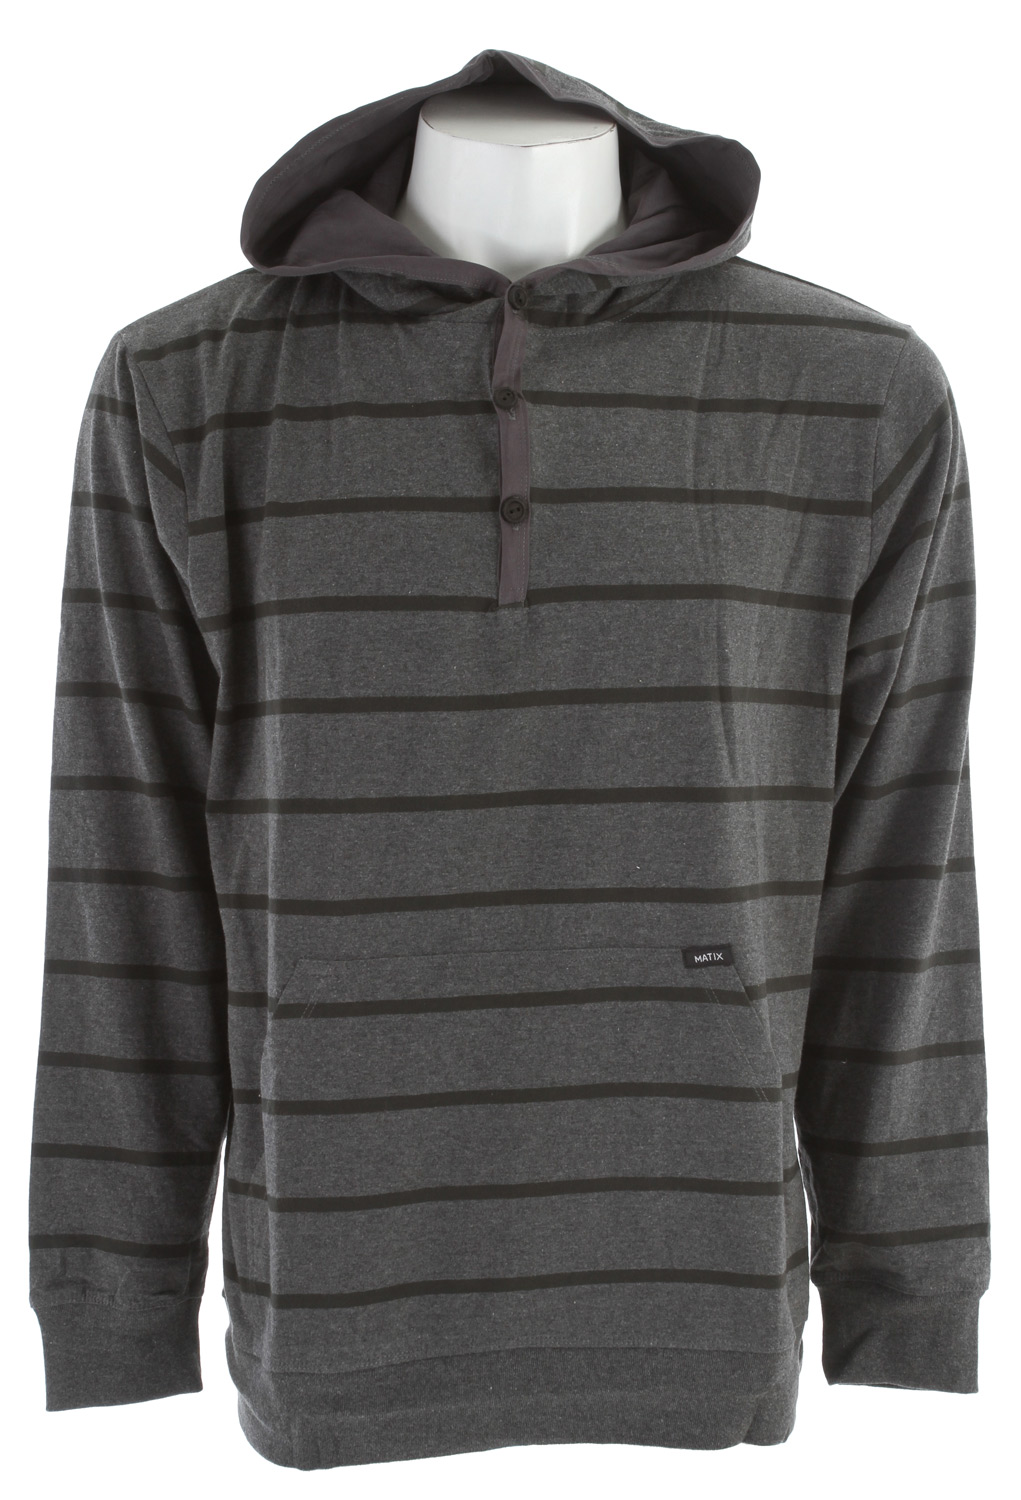 Key Features of the Matix Trugoy Hoodie: 55% cotton/45% poly, heavy-weight jersey 200g Heavyweight heathered jersey with yarn-dye stripes Rugby hood with kangaroo pocket Lightweight twill placket Hood binding and hood lining Coverstitch details Softener wash Wooden buttons Matix labeling - $37.95